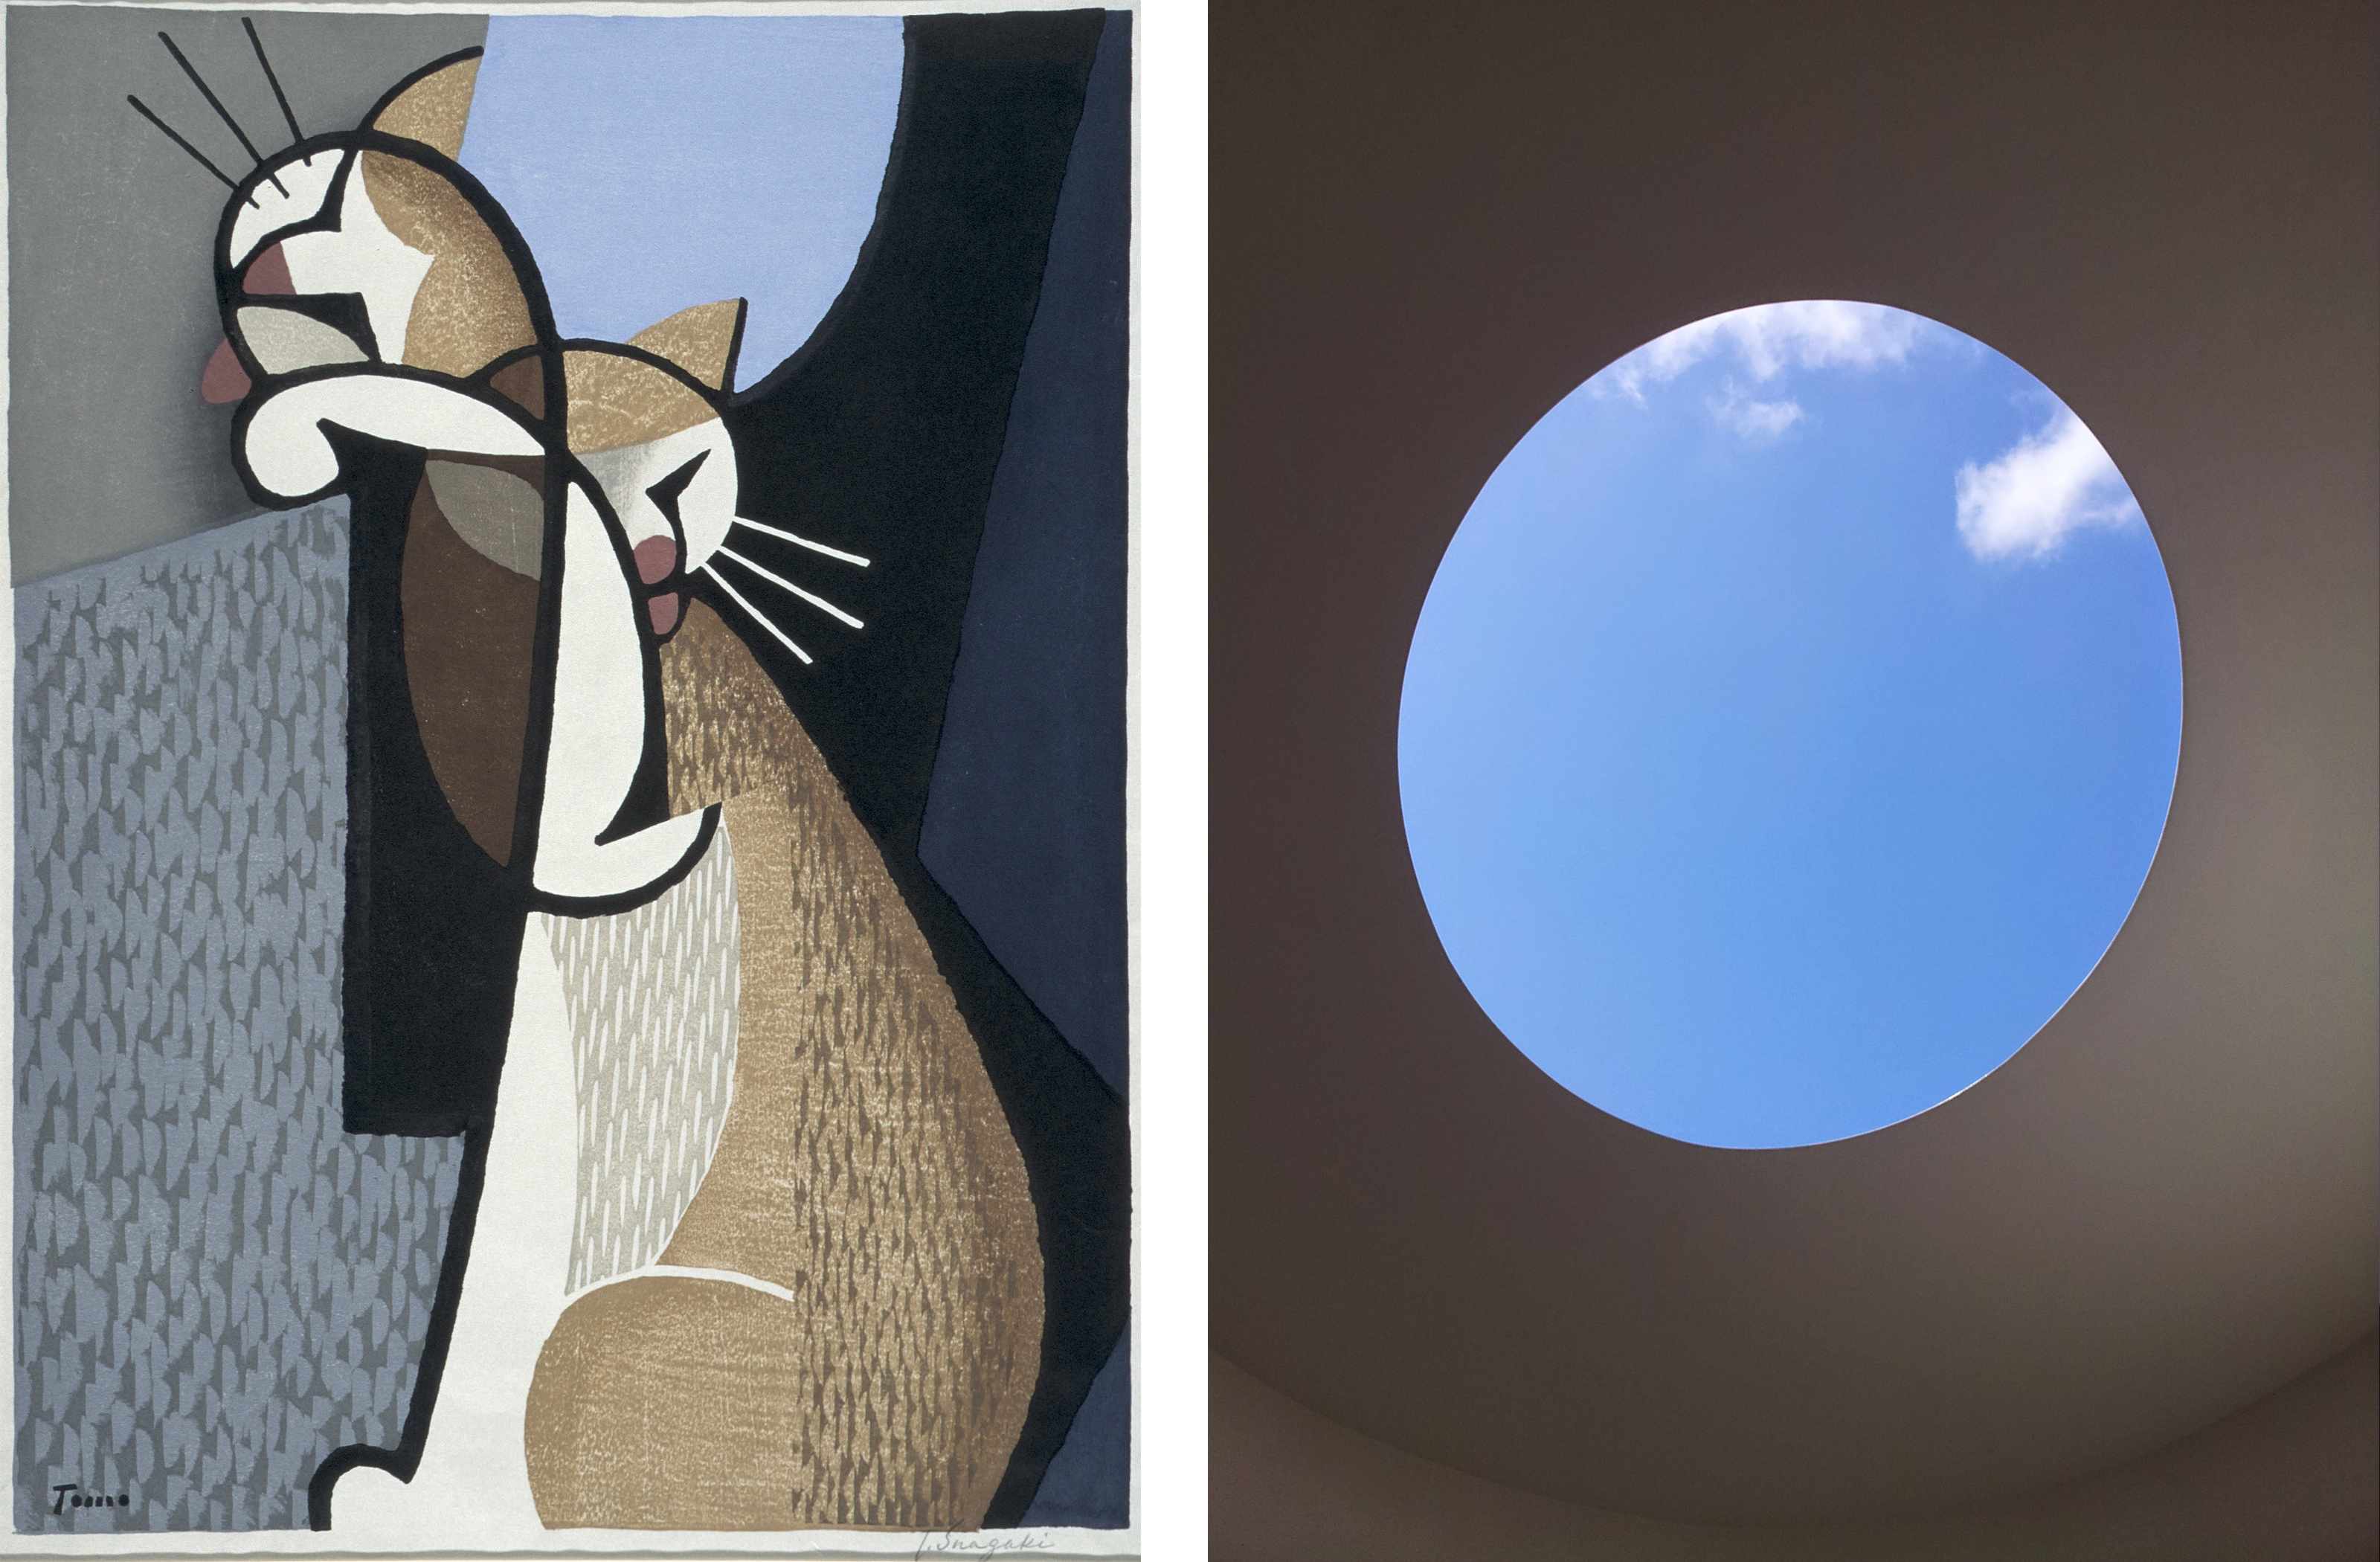 Left: Inagaki Tomoo, Cat Making-up, 1955, Los Angeles County Museum of Art, gift of Mr. and Mrs. Felix Juda, photo © Museum Associates/LACMA; Right: James Turrell, The Color Inside, 2013, © James Turrell, installation view at The University of Texas at Austin. Photo taken by Vivian Lin in 2014.